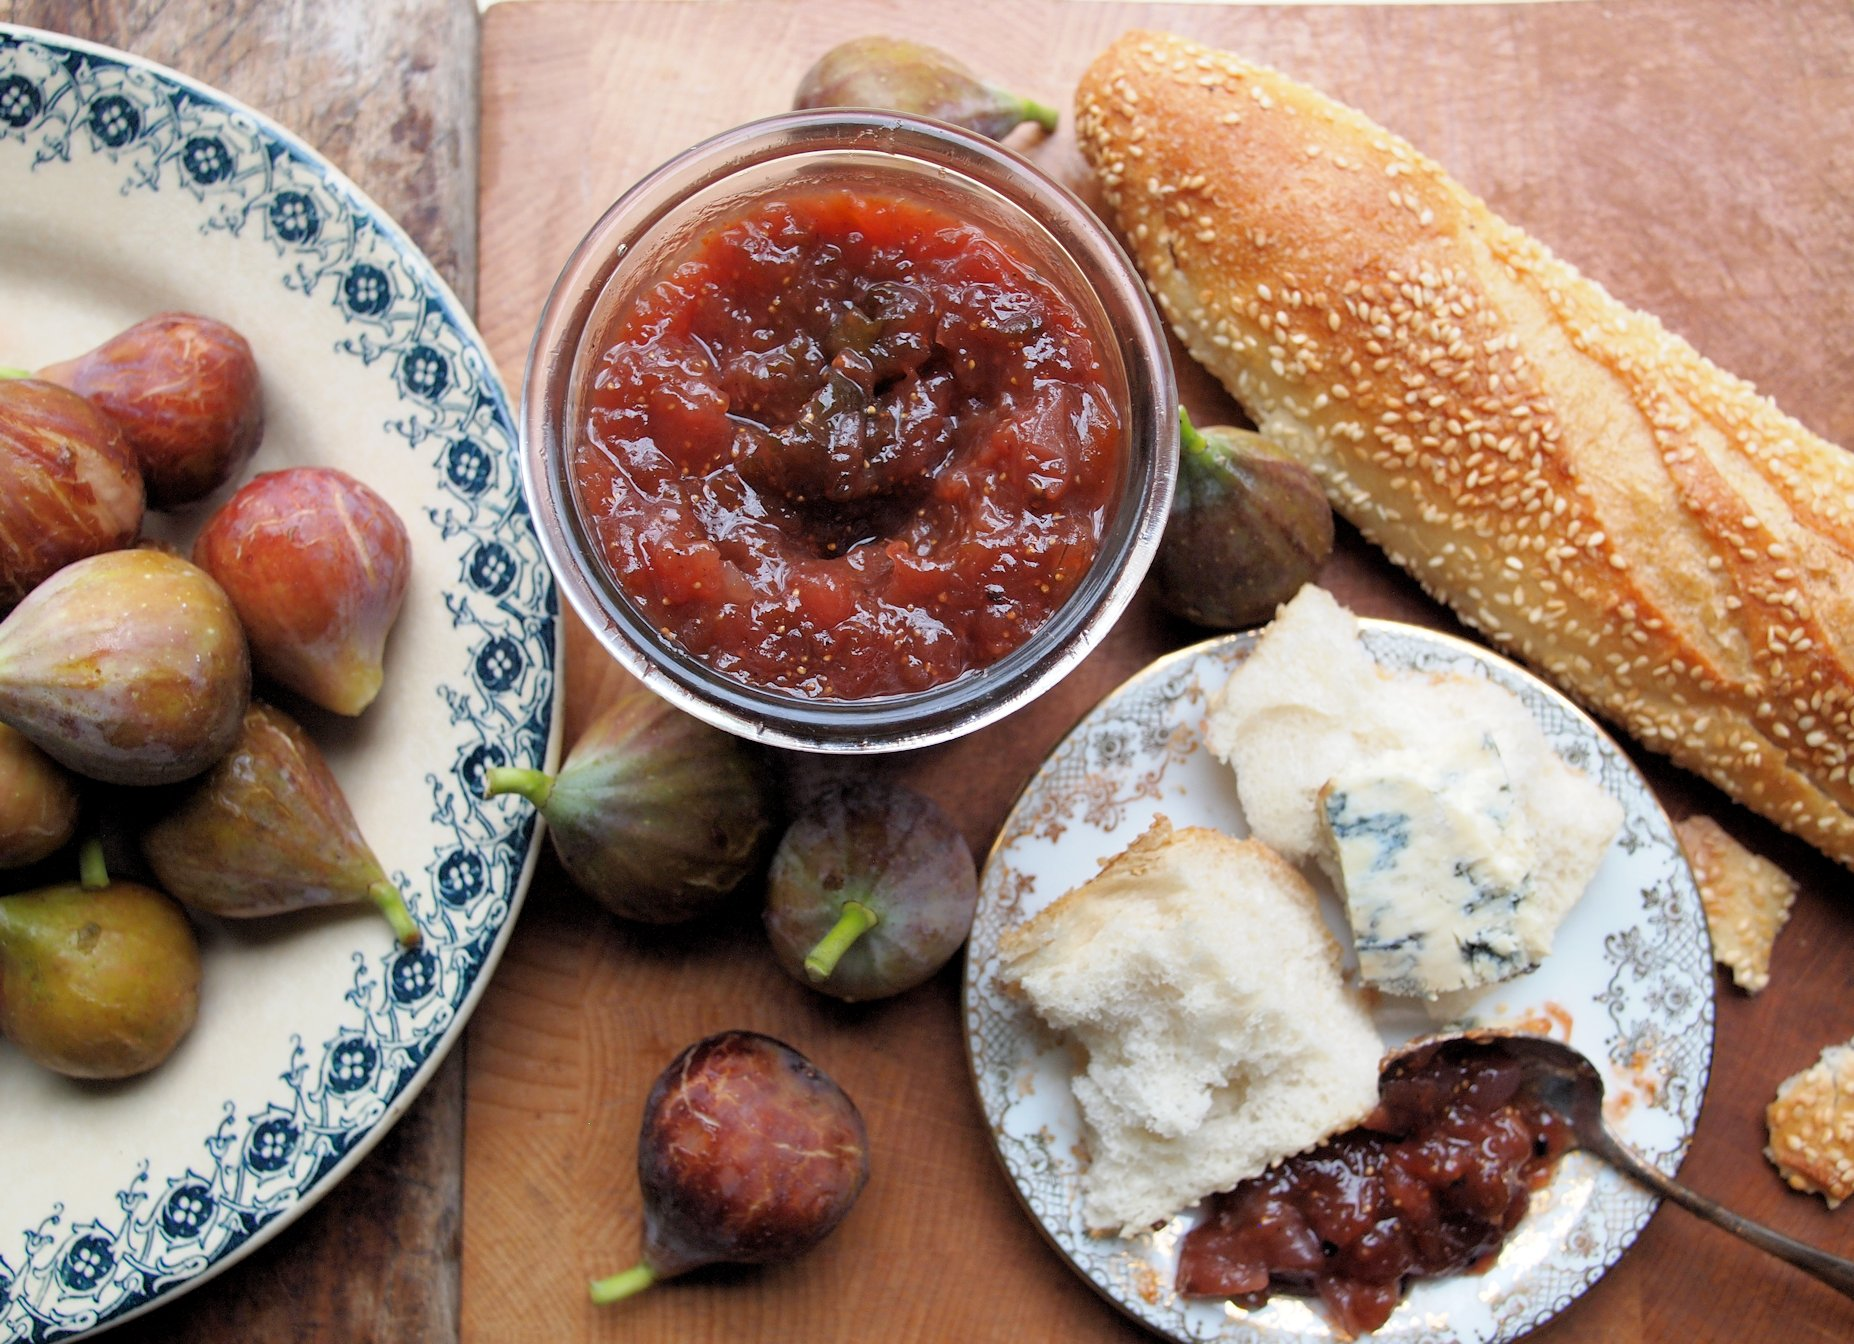 From the Autumn Preserves Pantry – Apple, Fig and Pear Chutney with Cardamom